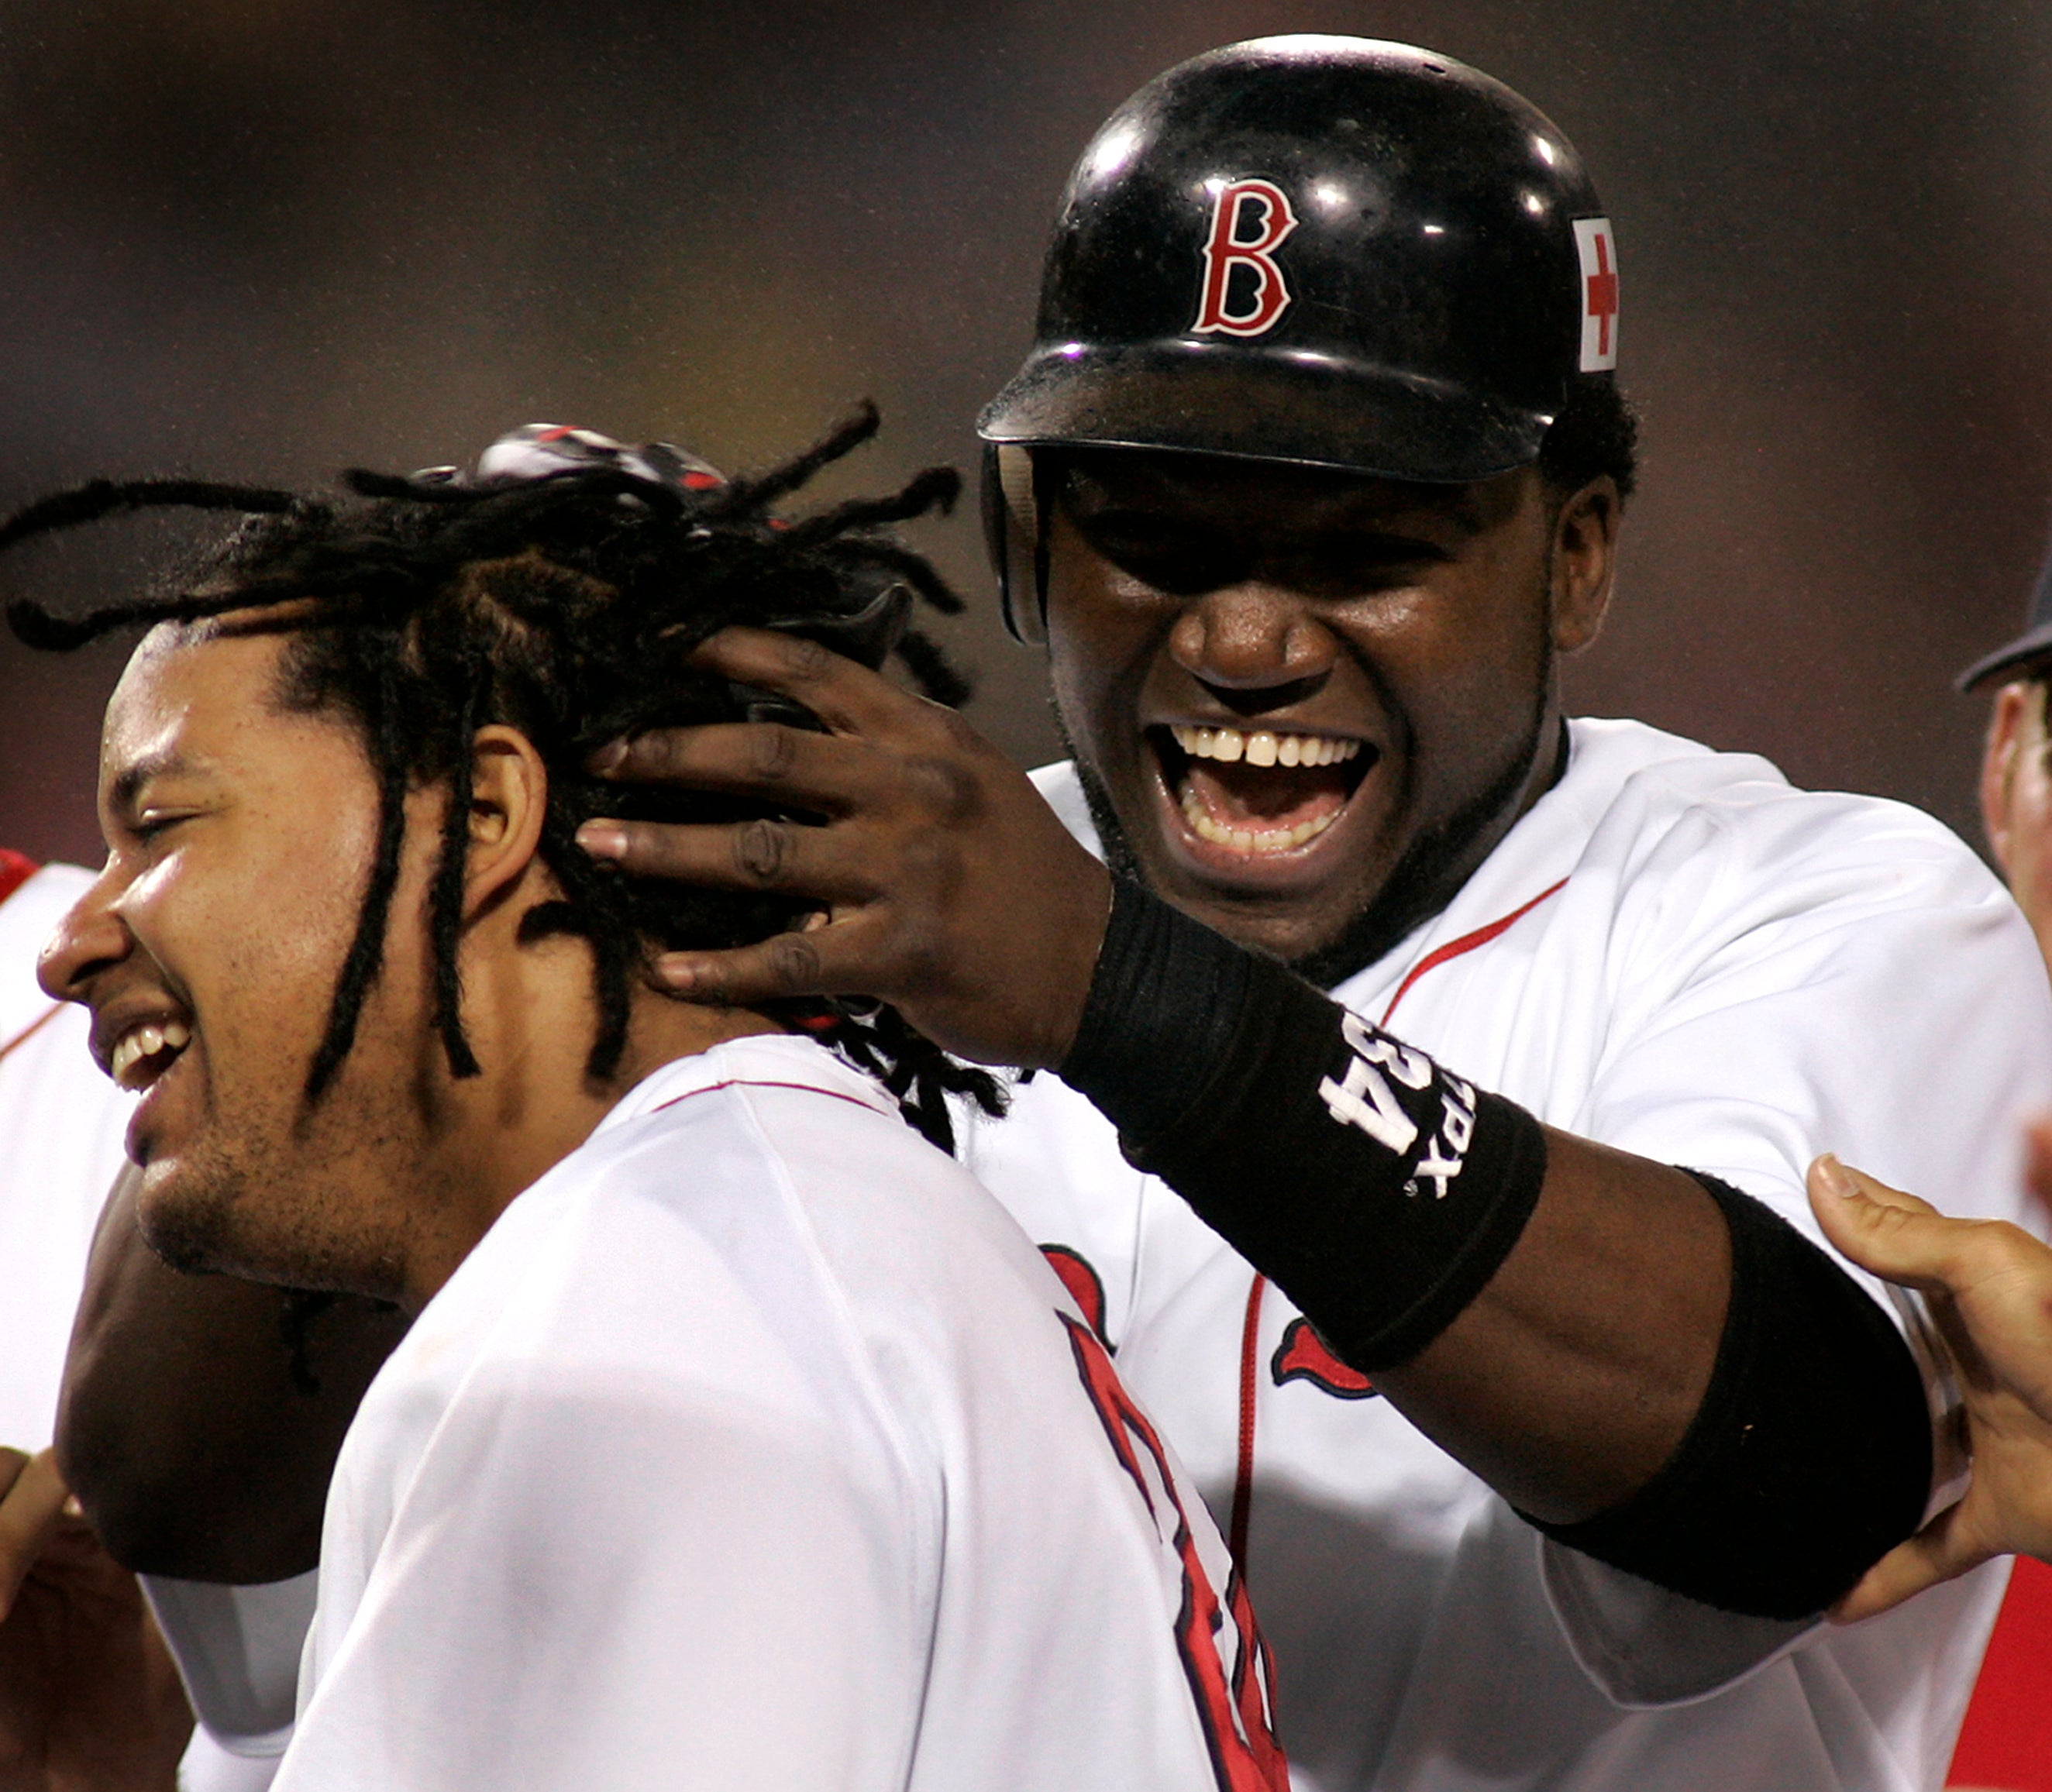 David Ortiz shares a moment with former teammate Manny Ramirez.